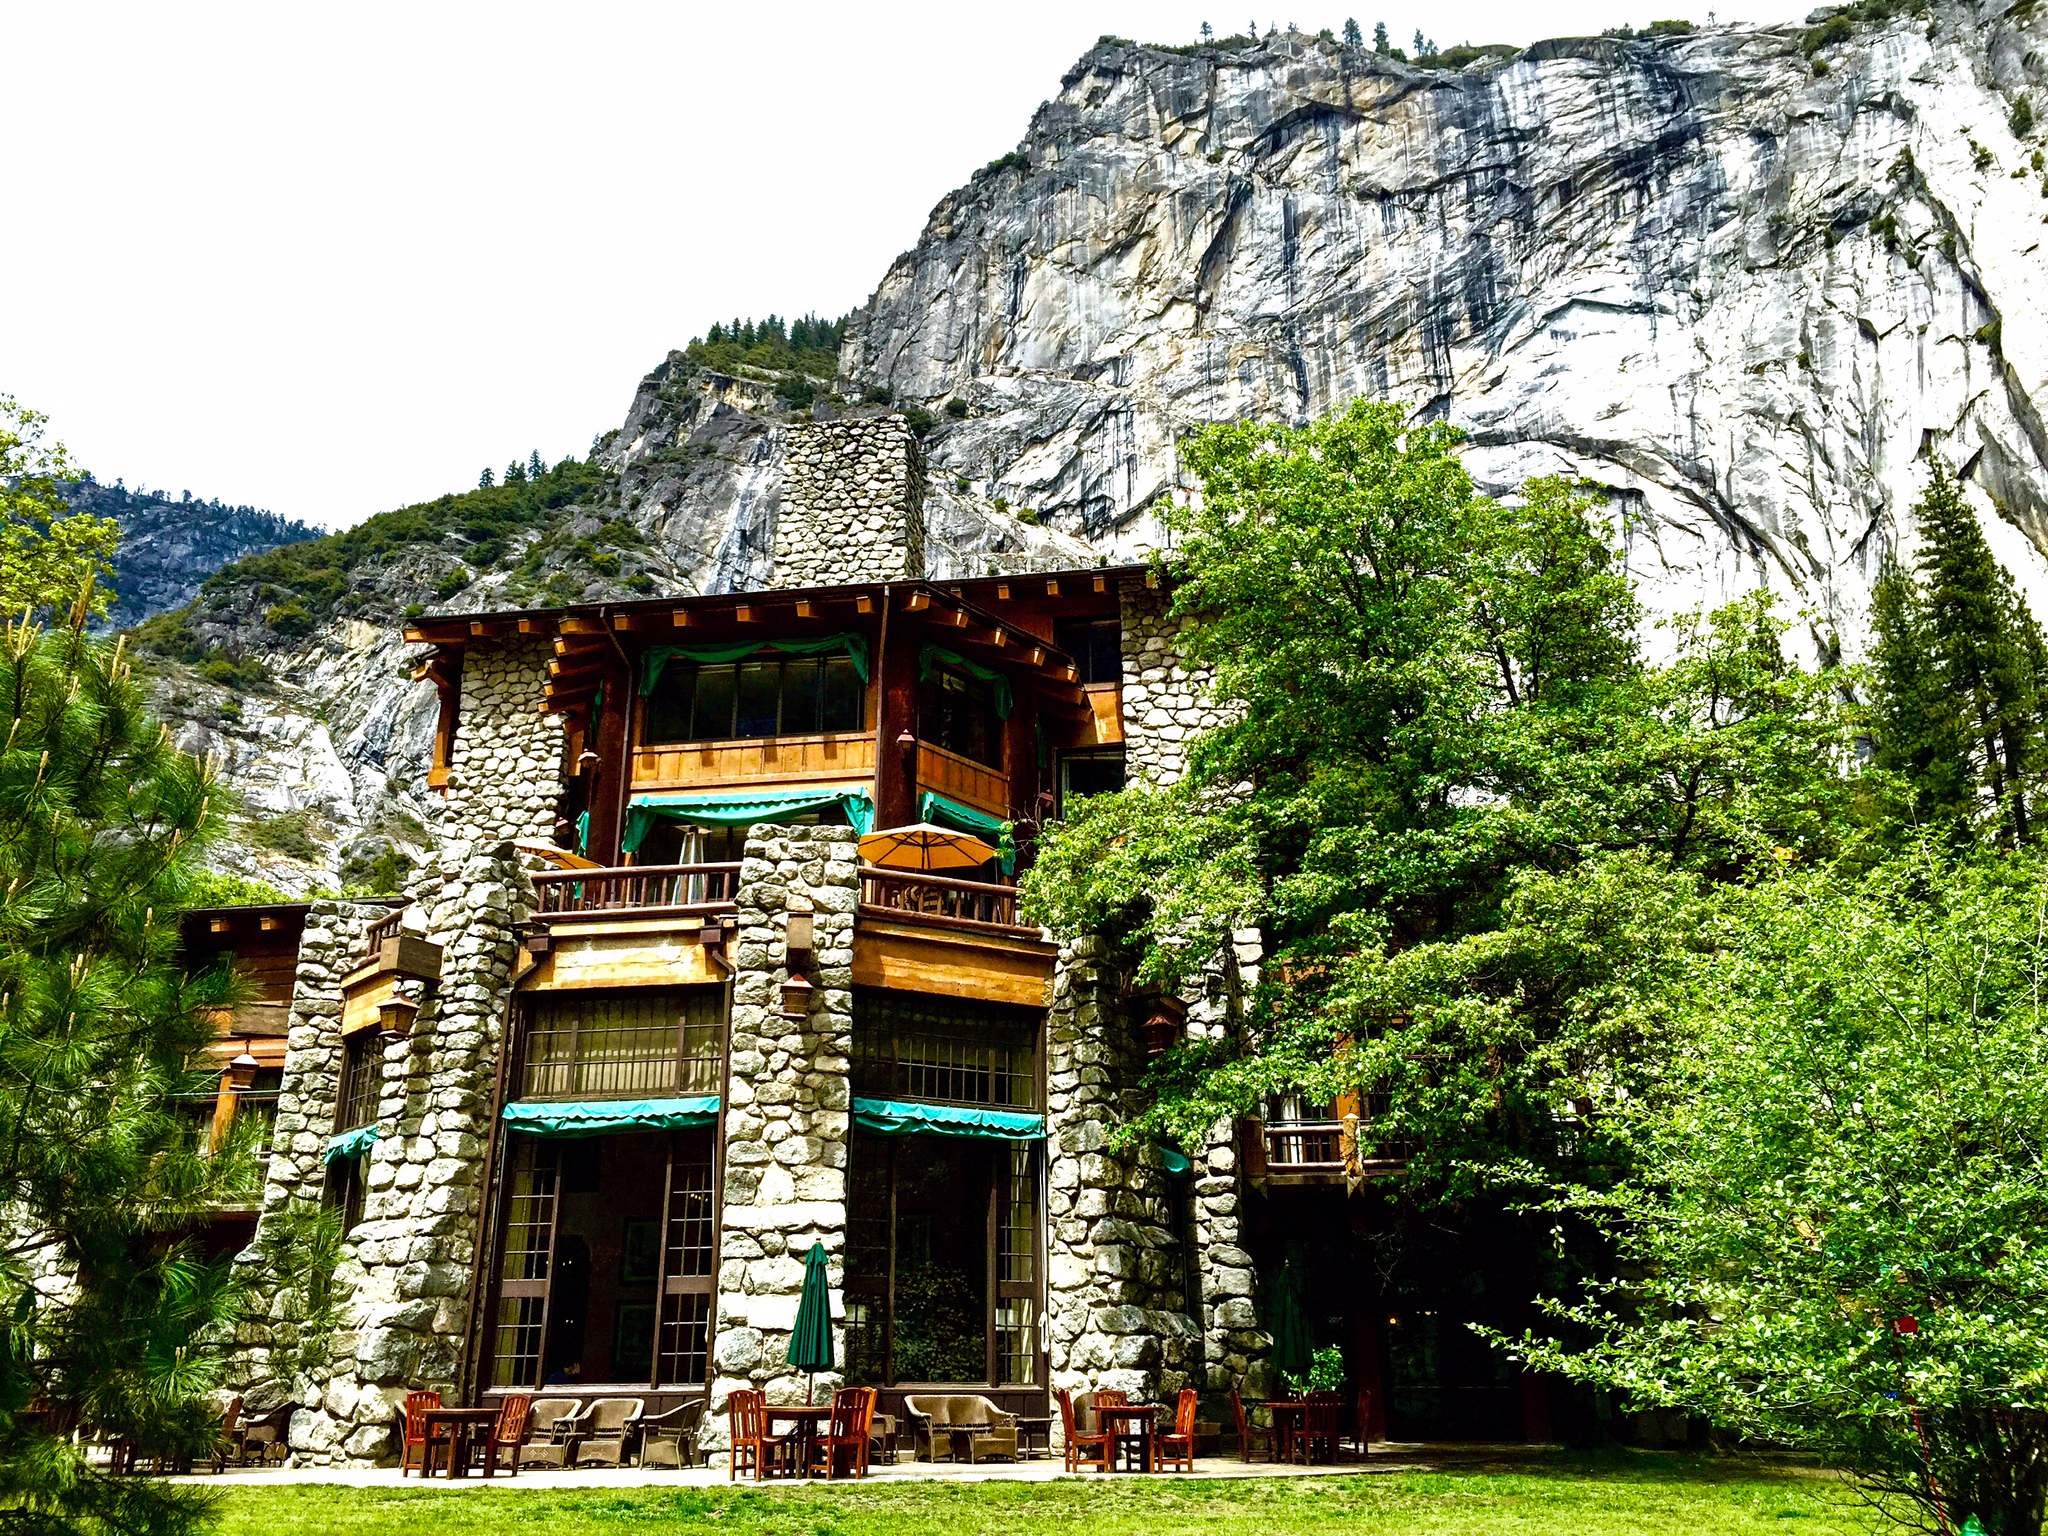 Ahwahnee hotel, our New years goal for 2019 or 2020